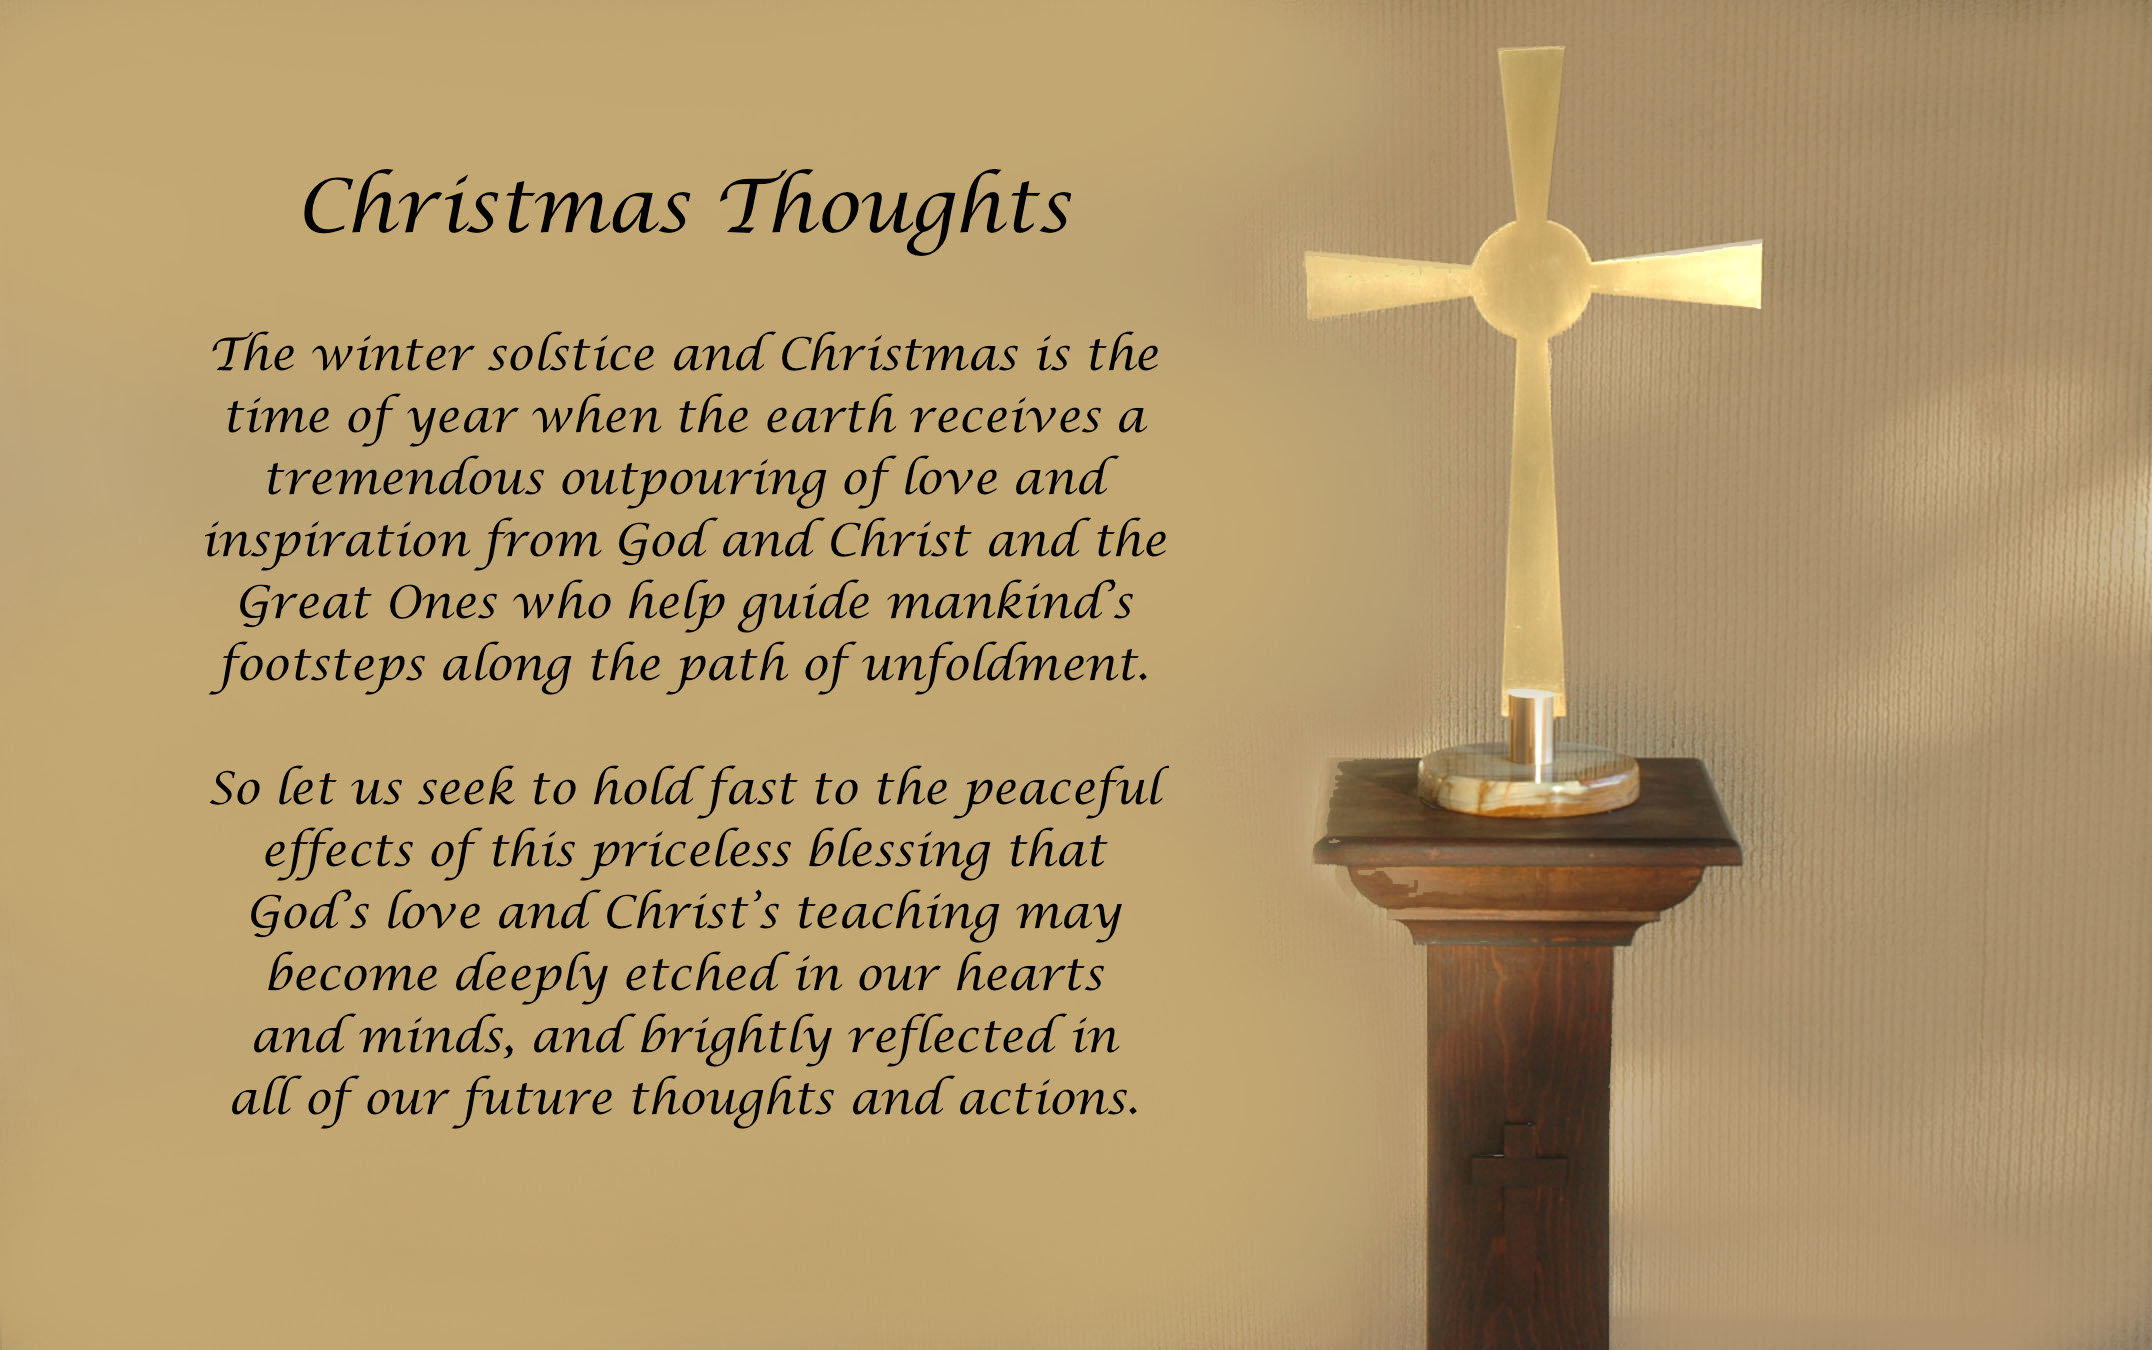 Christmas Thoughts blessings outpouring God Christ